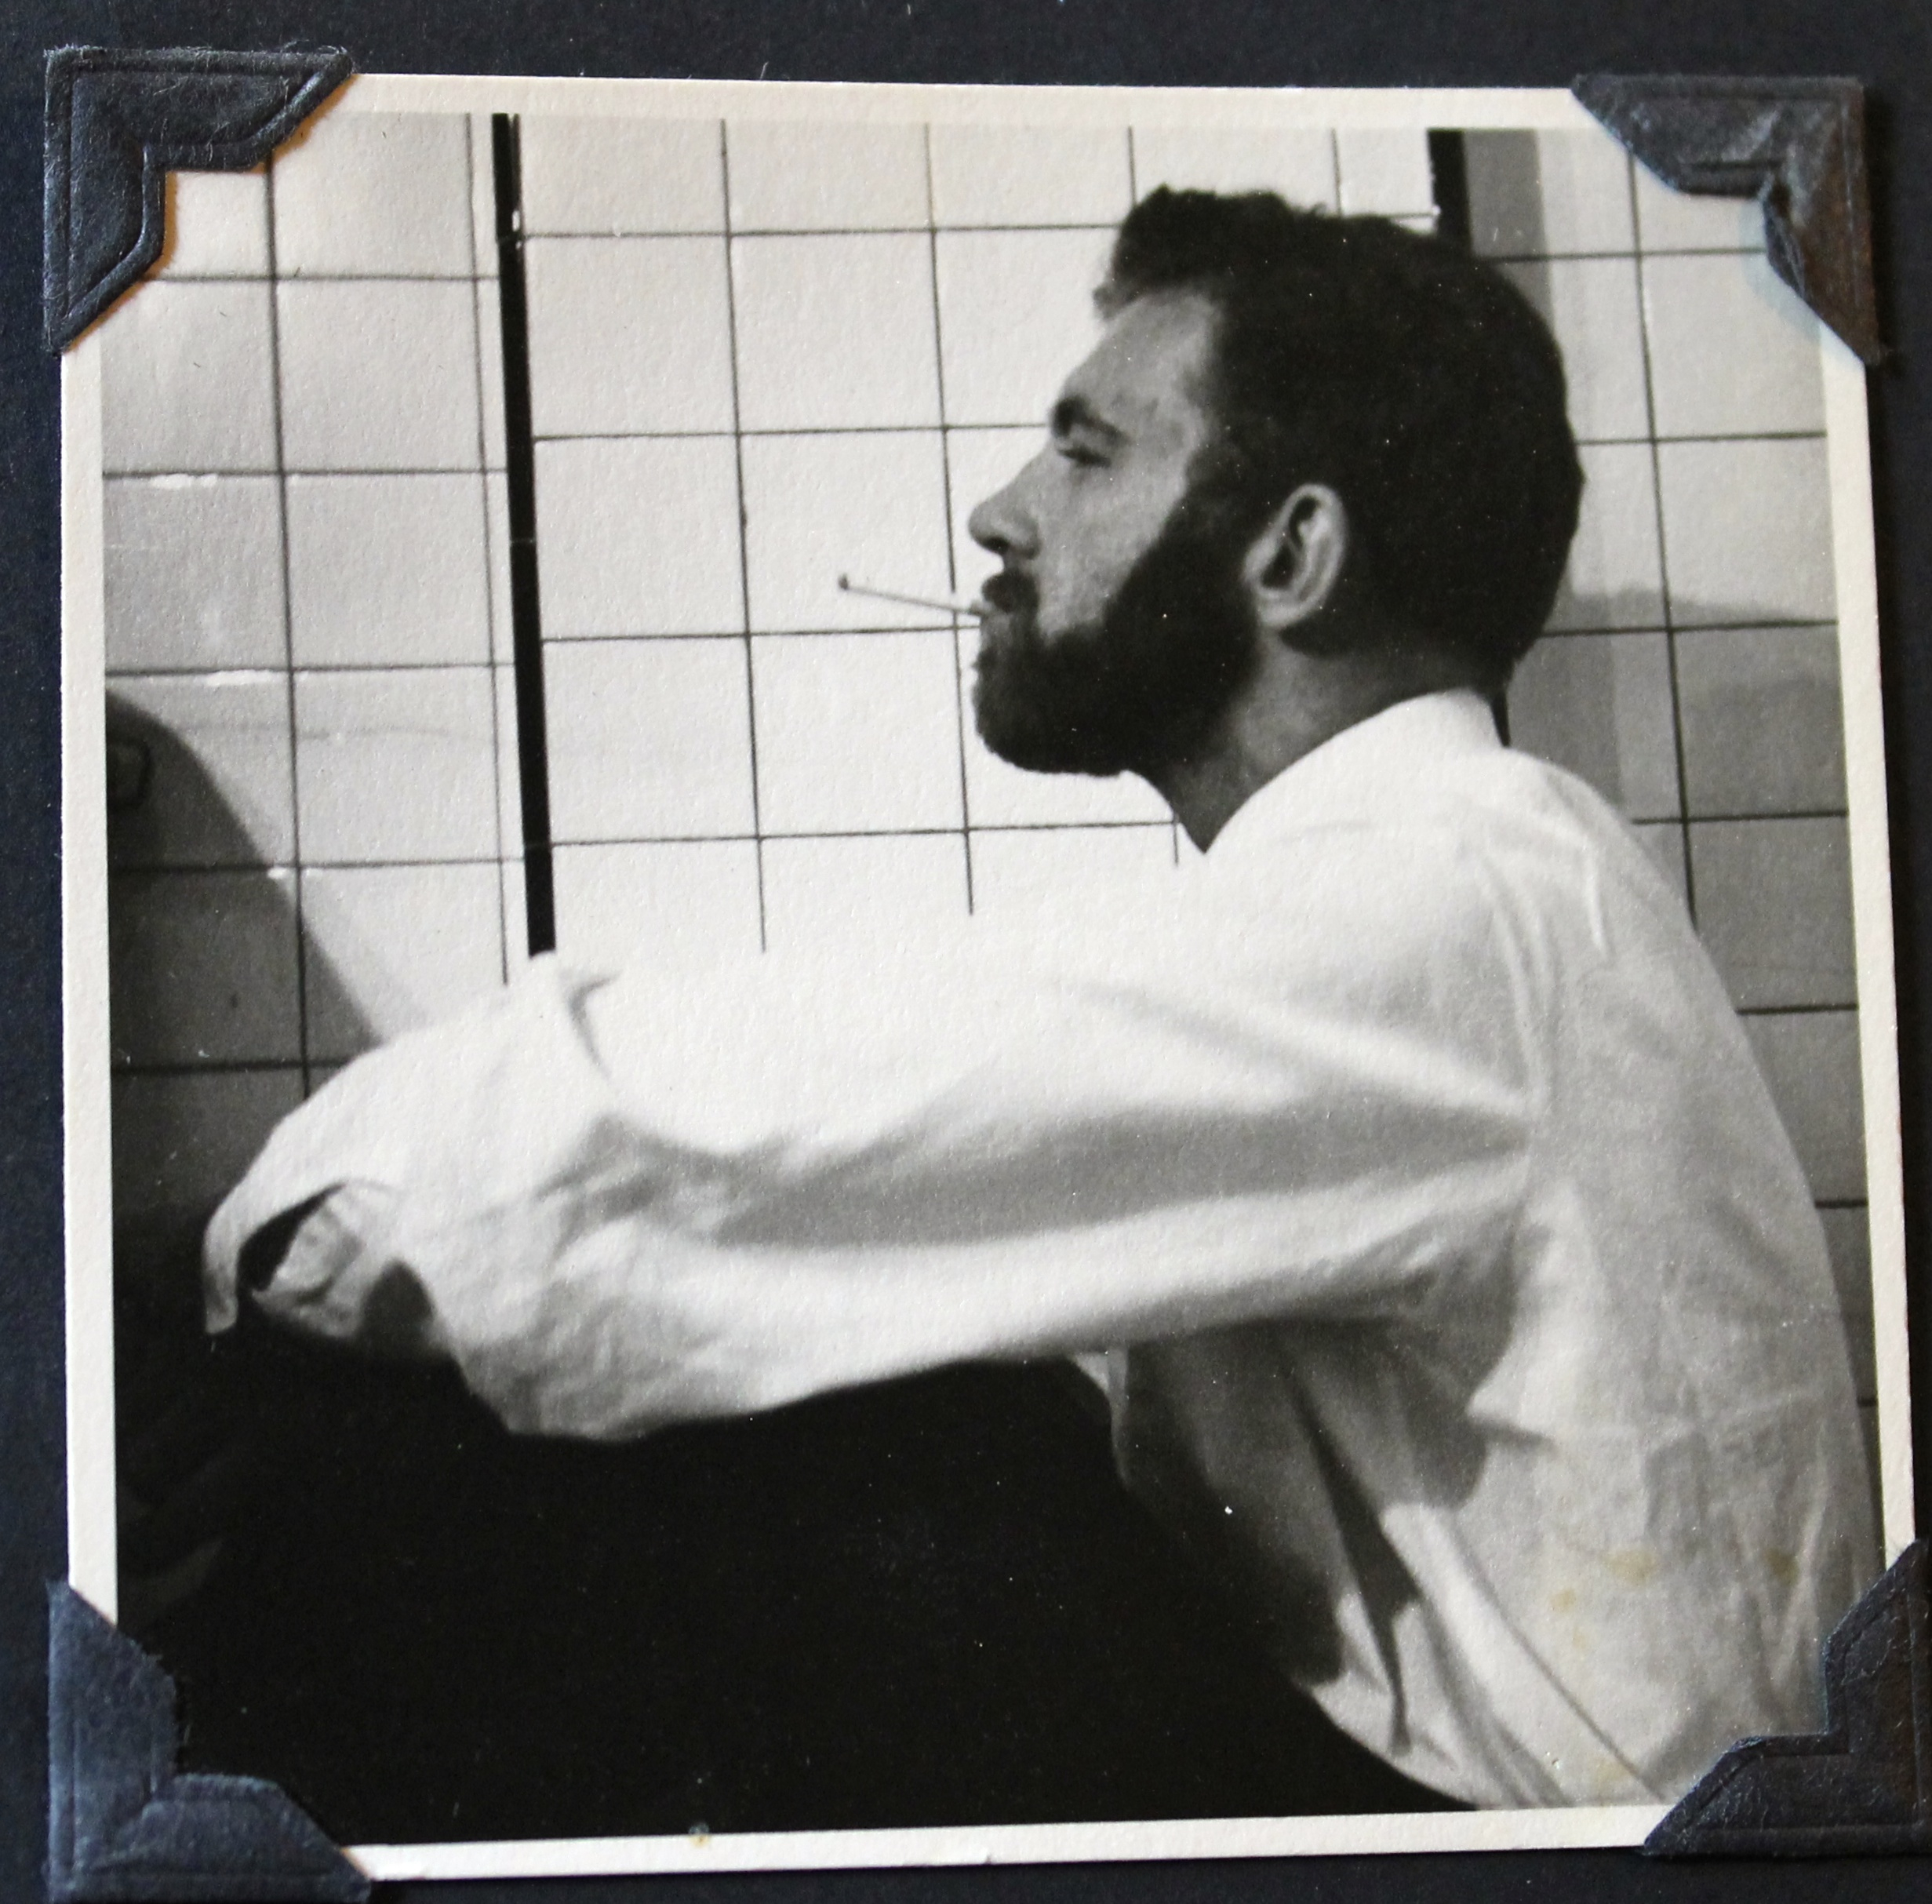 The Quiet Painter, by Michelle Annette Tremblay, Photo of Arne Roosman as a young man courtesy of Arne Roosman